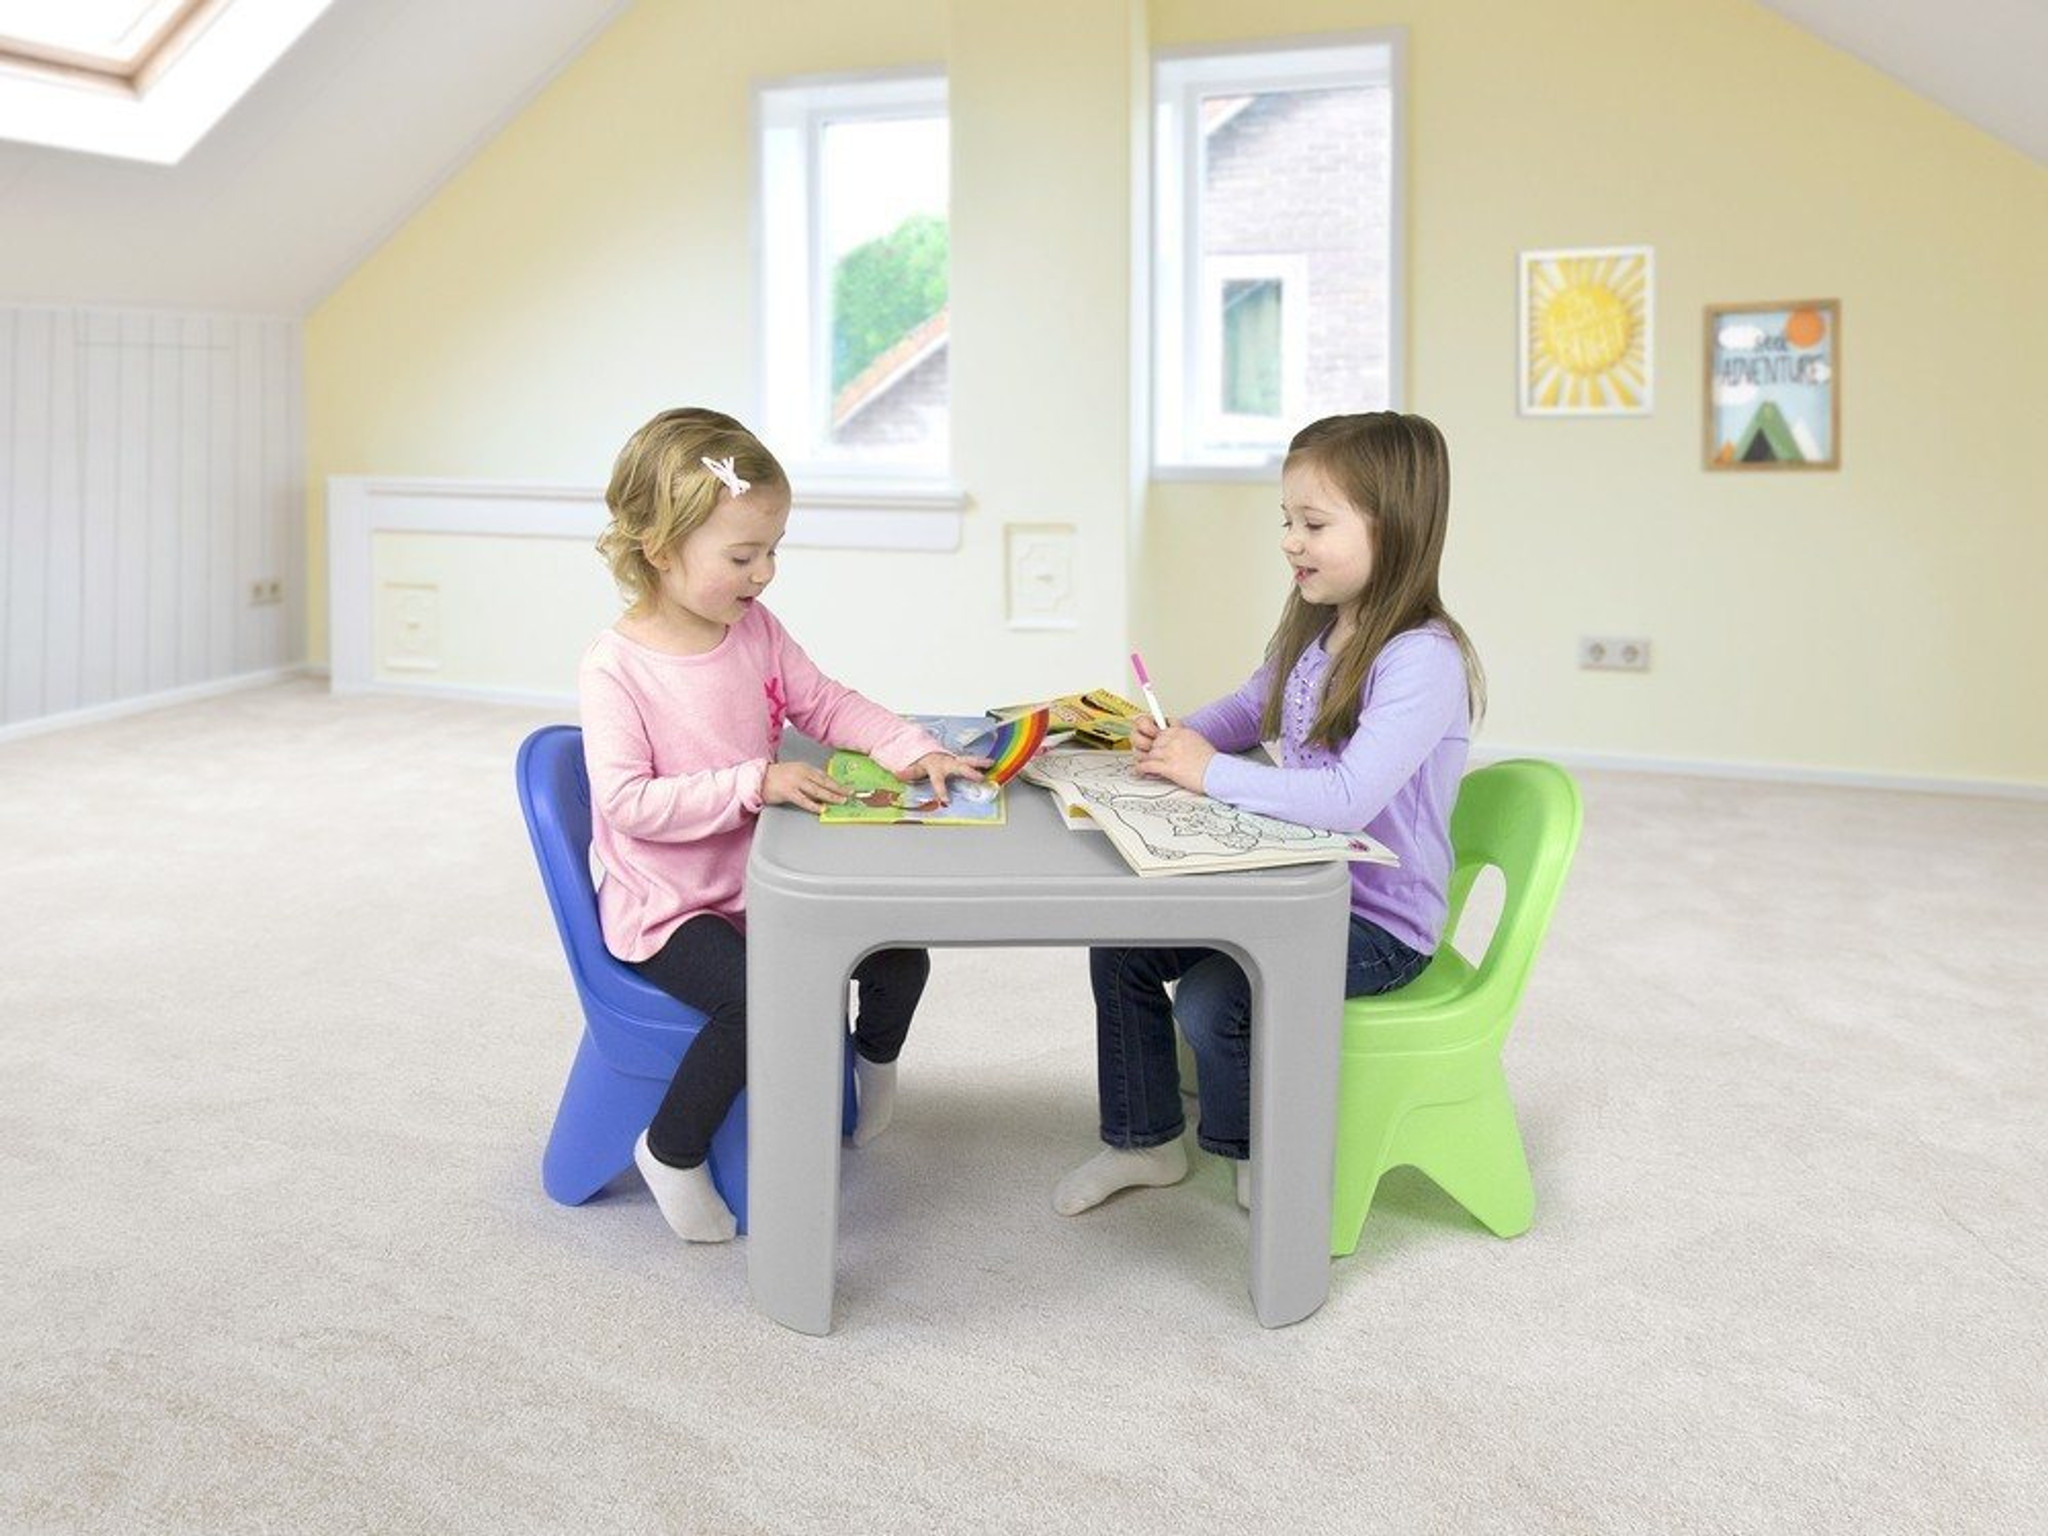 ... Simplay3 Play Around Table And Chair Set For Toddler Activities Like  Puzzle Solving And Arts And